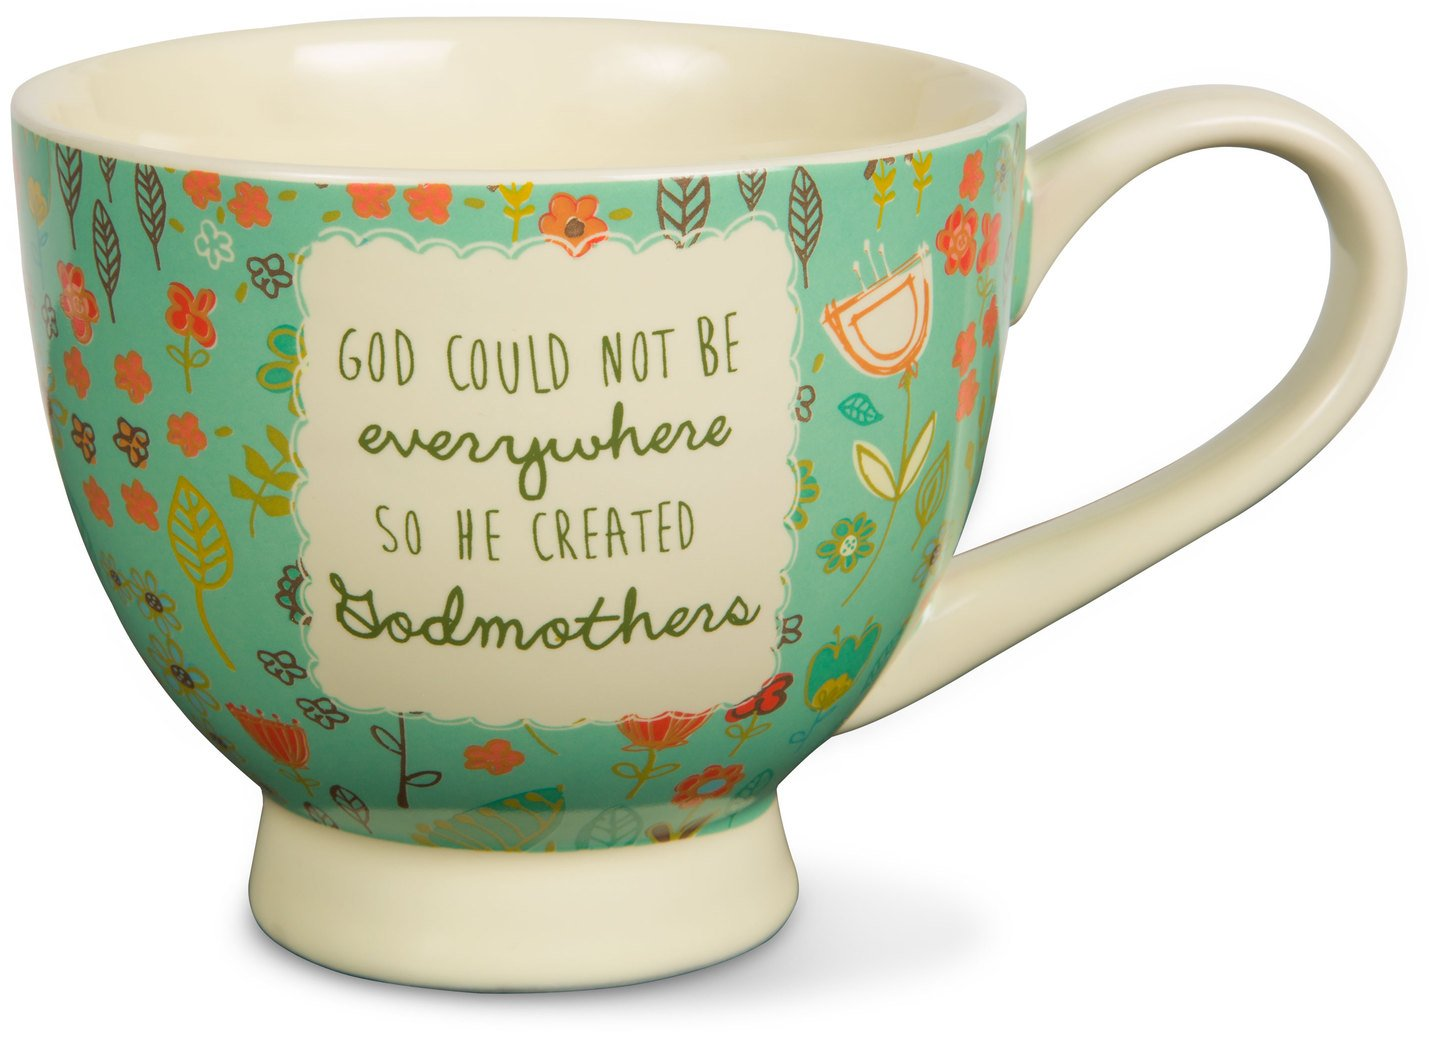 A Mother's Love Pavilion Gift 54004God Could Not Be Everywhere So He Created Godmothers Floral Soup Bowl Mug, Teal, 17-Ounce Pavilion Gift Company